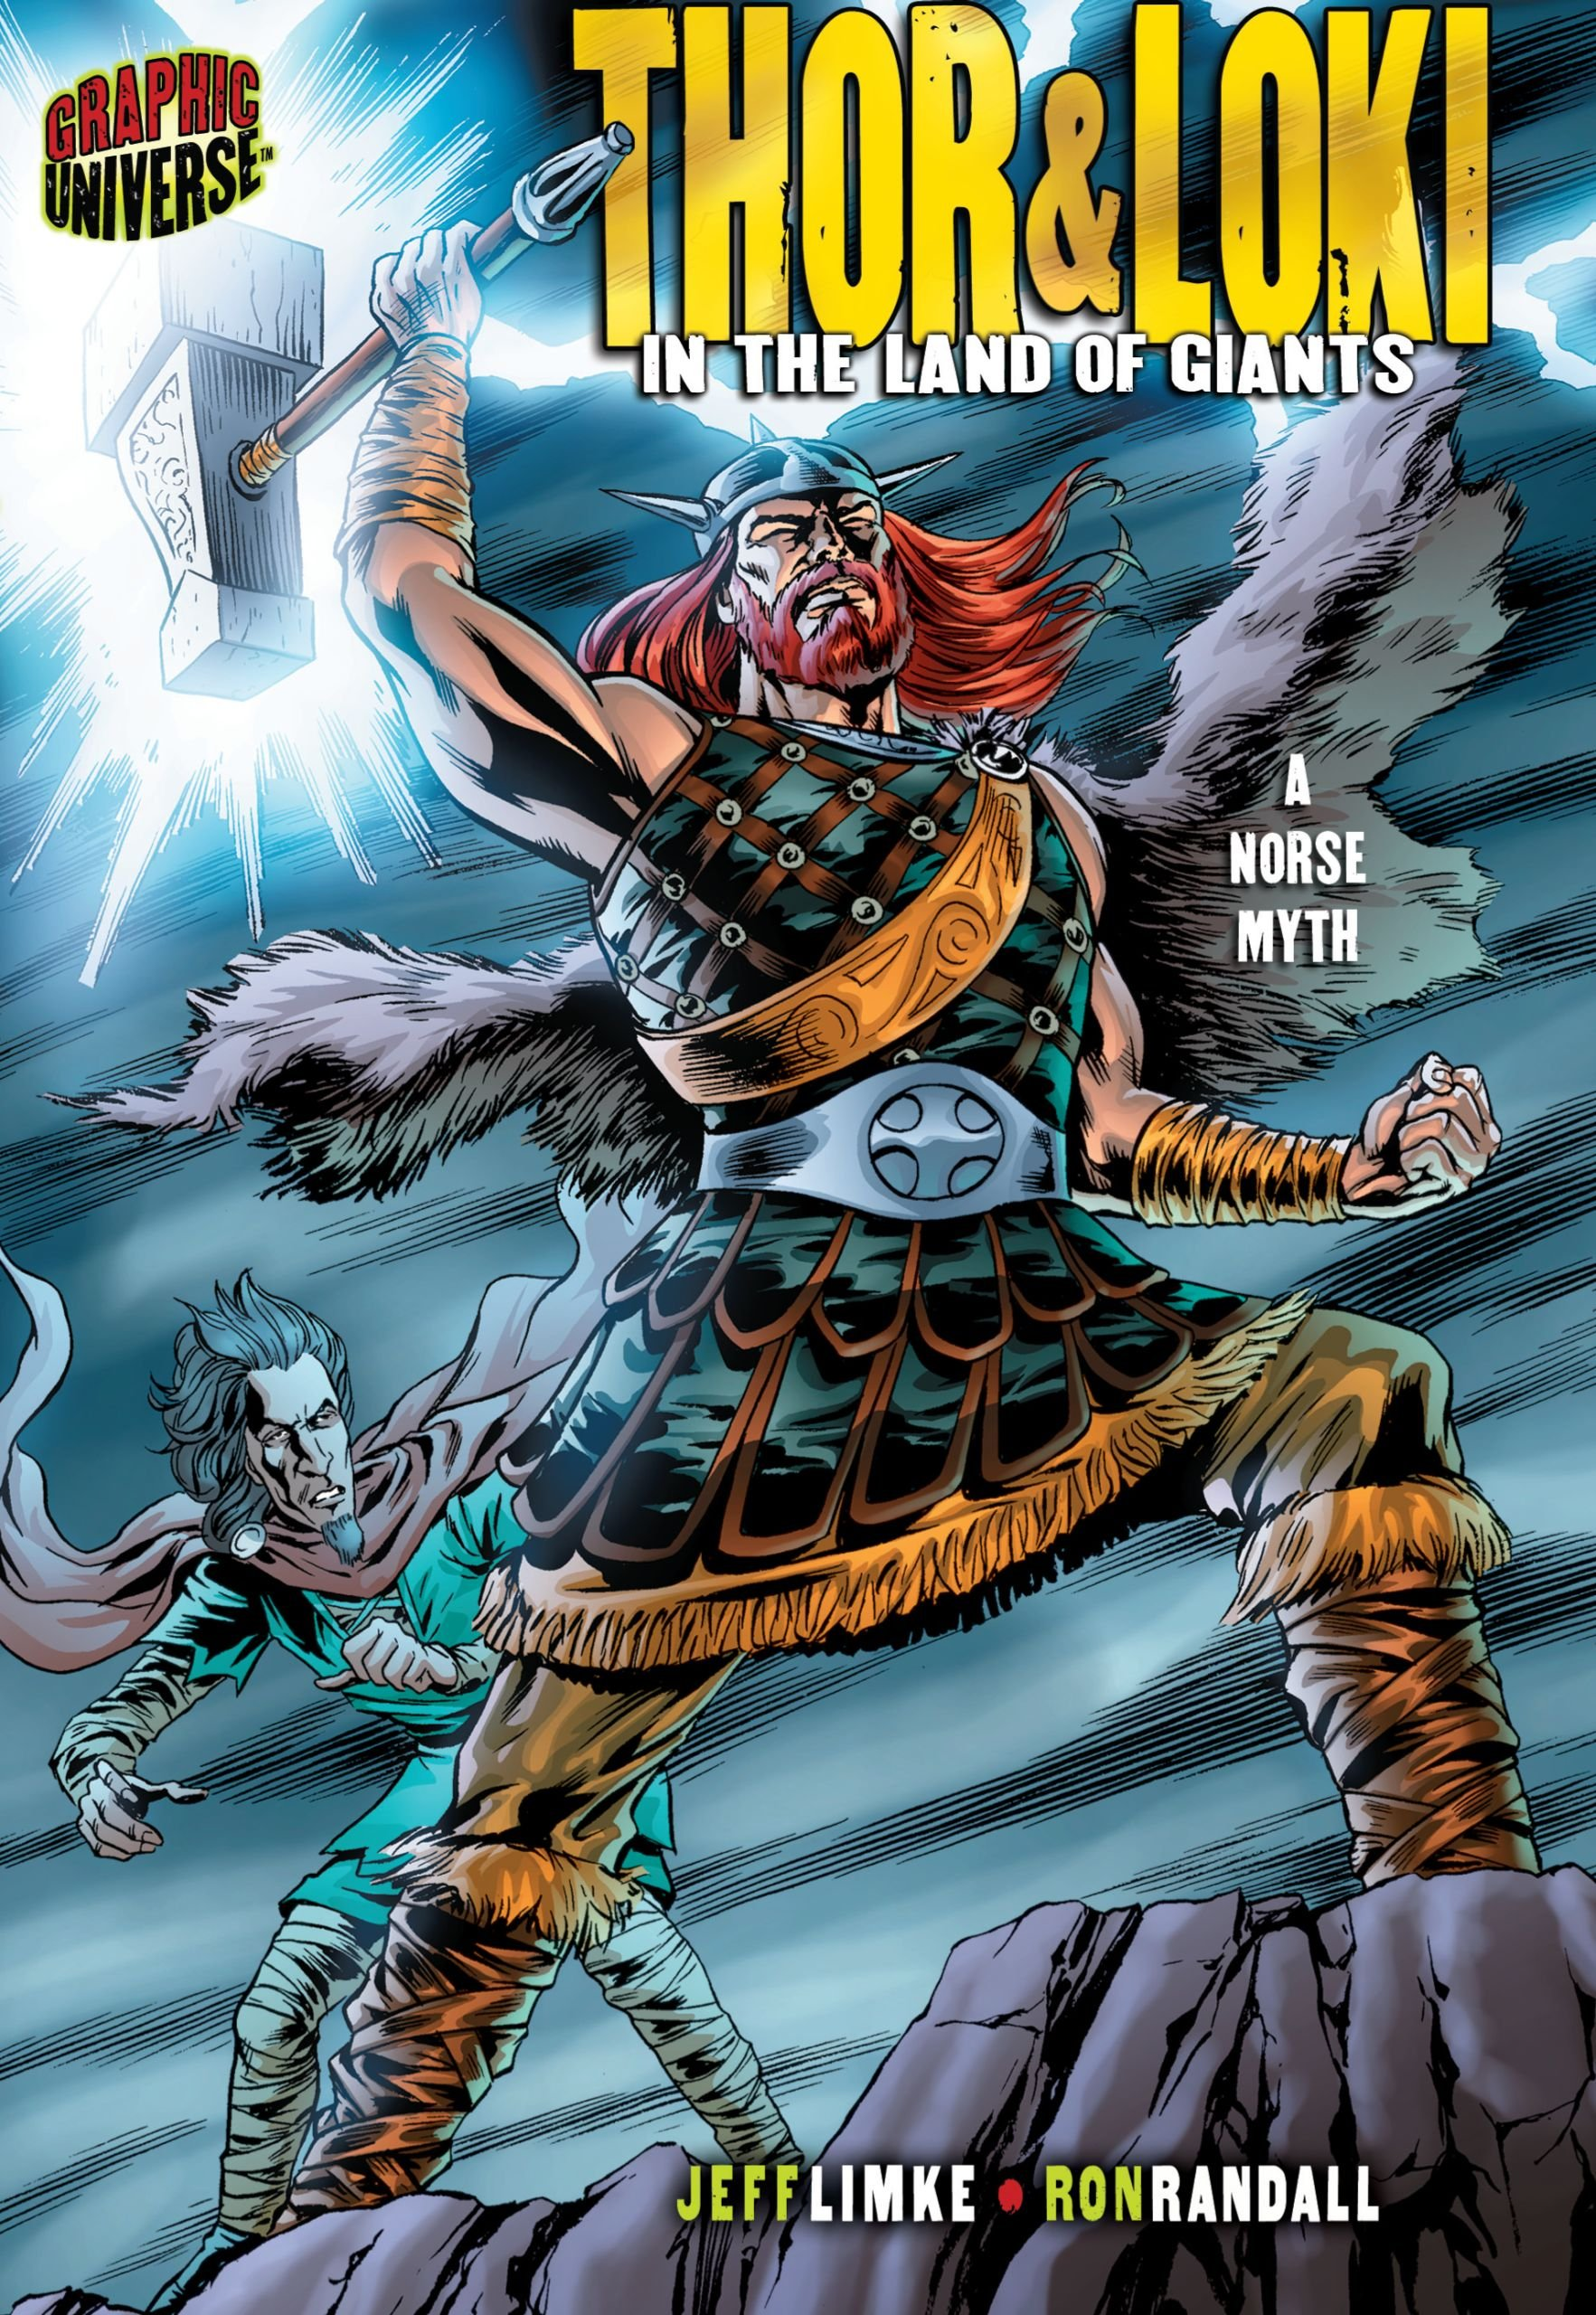 Thor & Loki: In the Land of Giants: A Norse Myth (Graphic Myths and Legends)